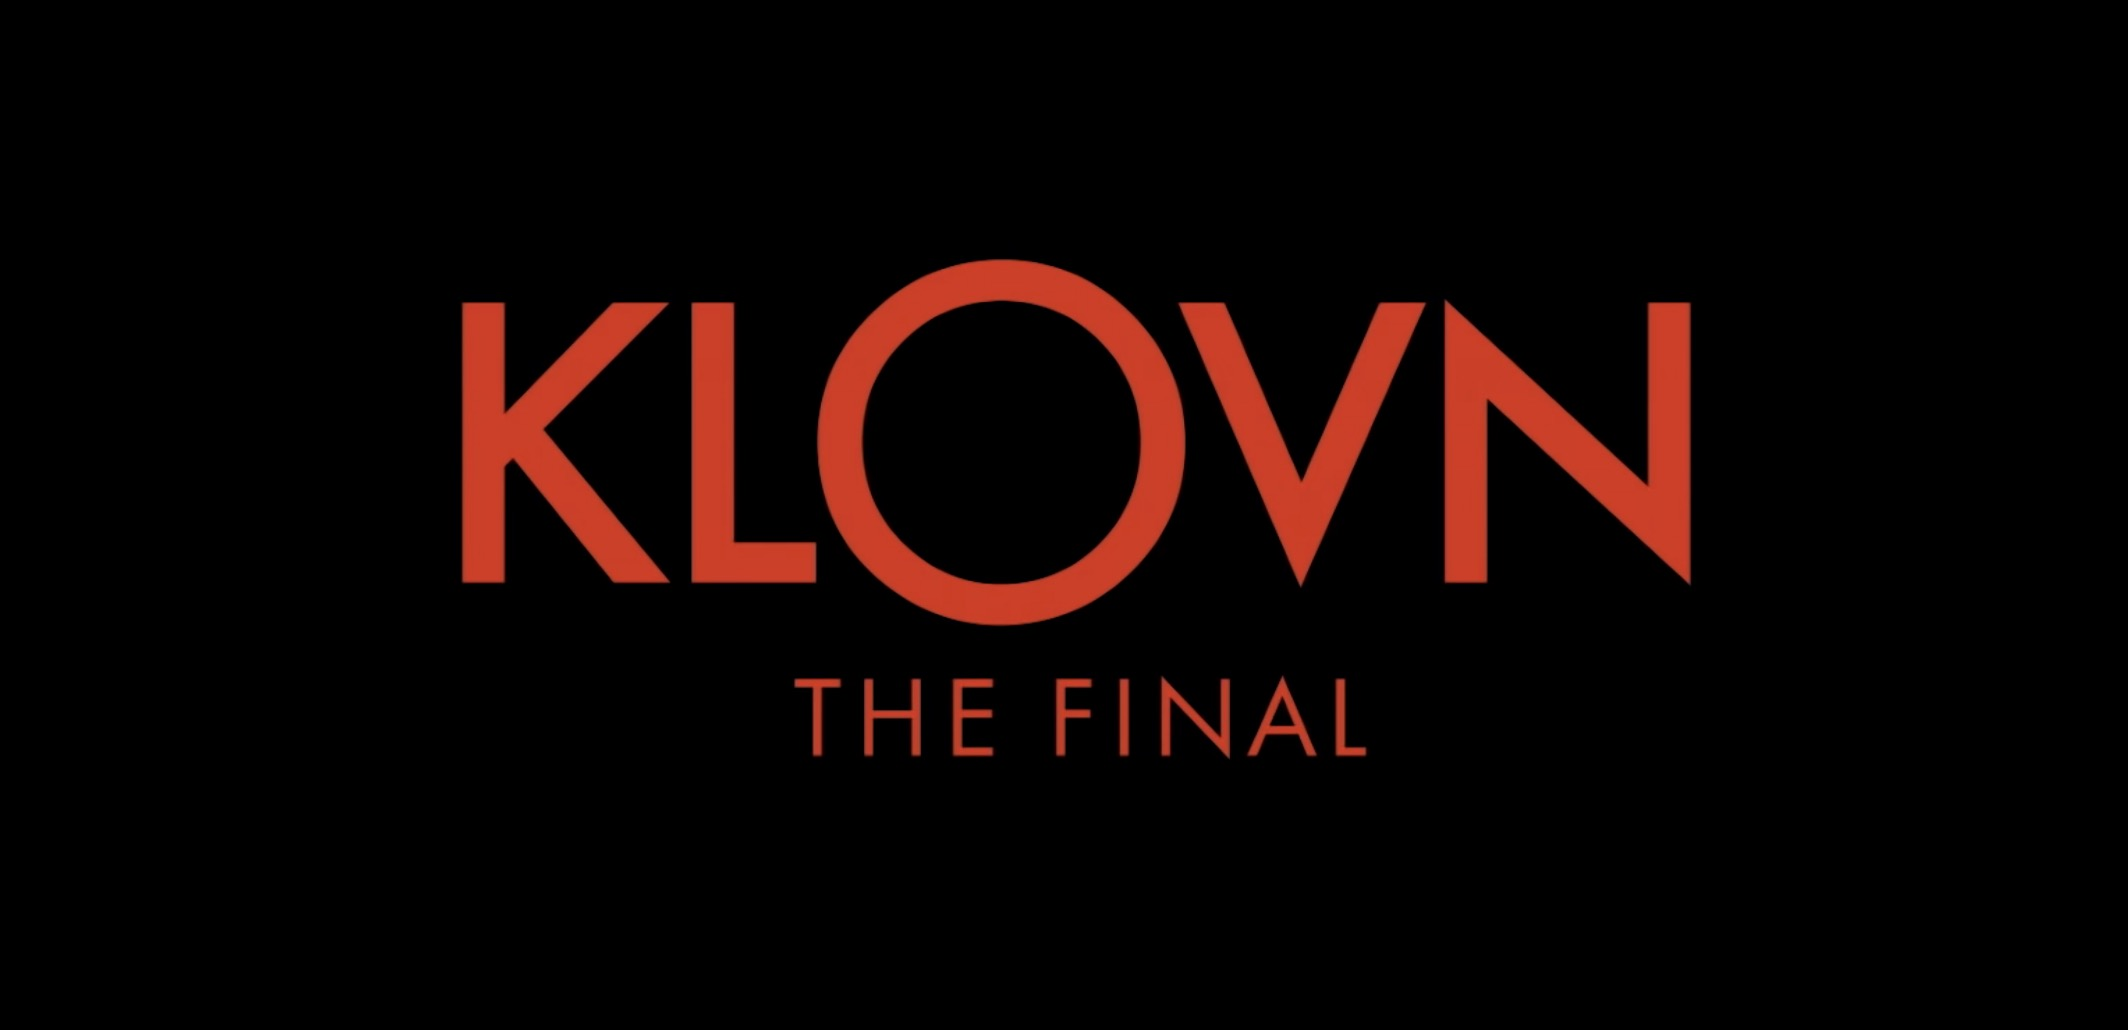 Klovn The Final trailer